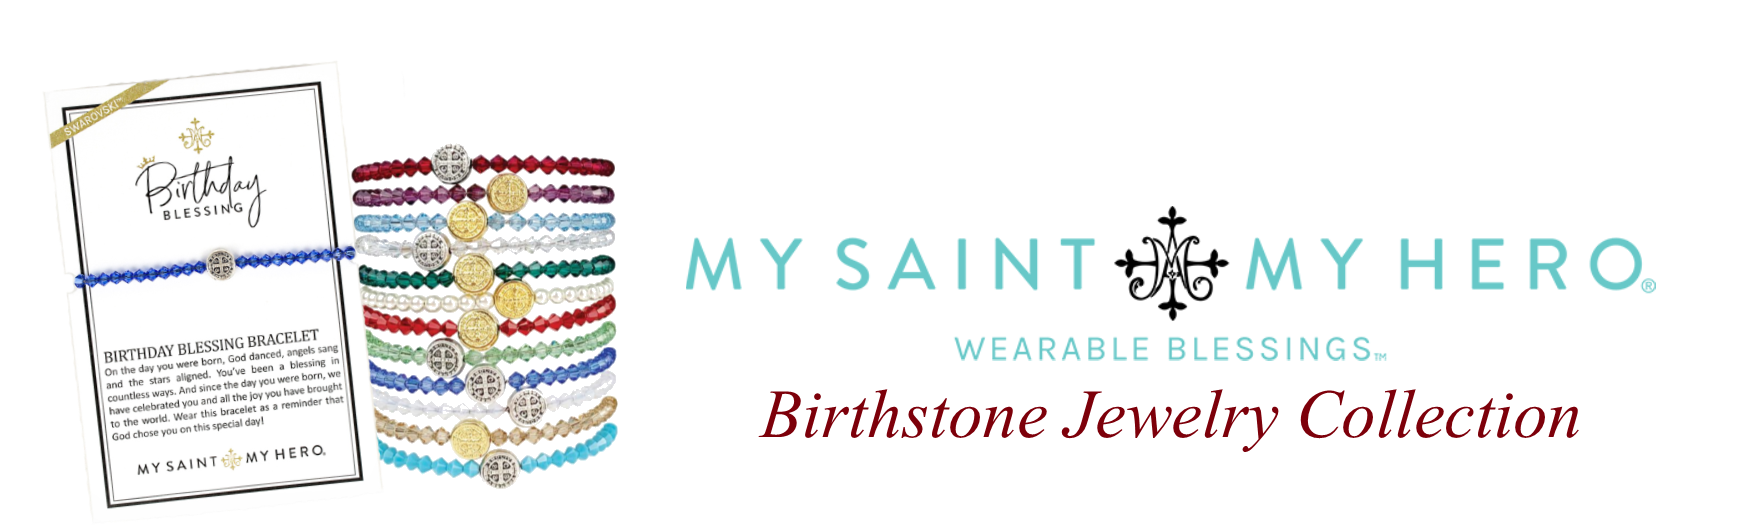 My Saint My Hero Birthstone Jewelry